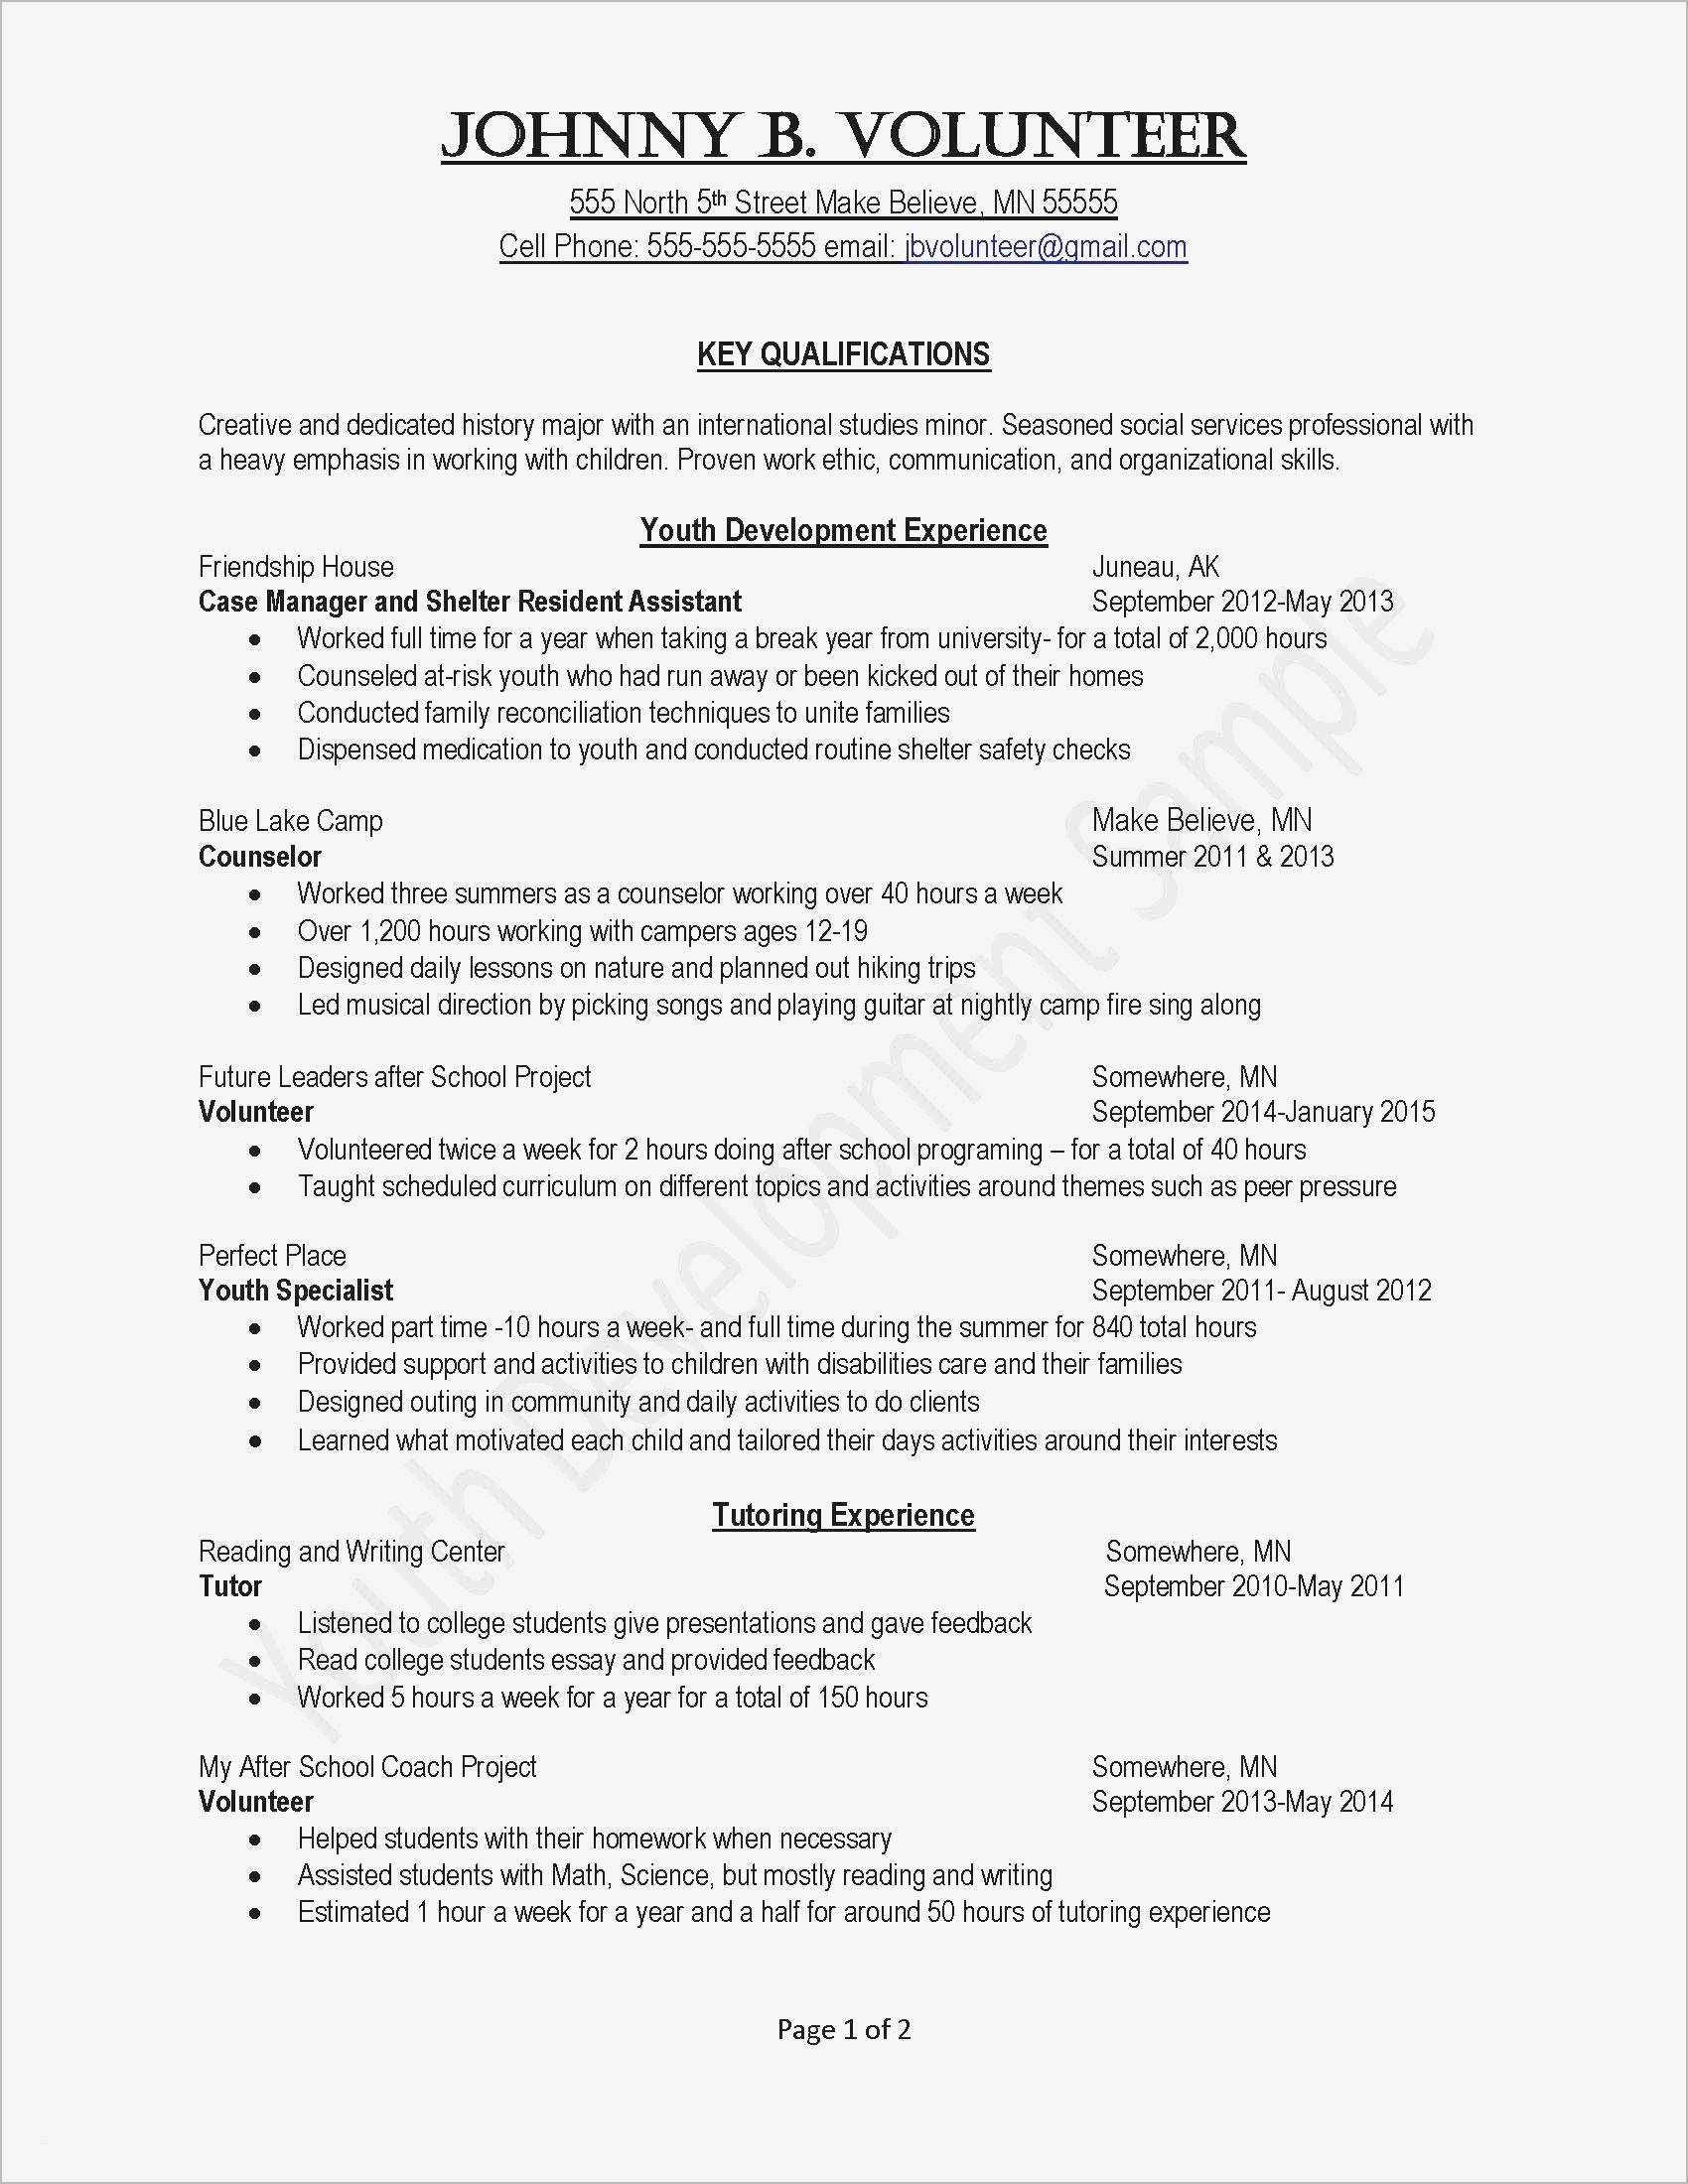 Will Serve Letter Template - Writing A Cover Letter for A Resume Elegant Job Fer Letter Template